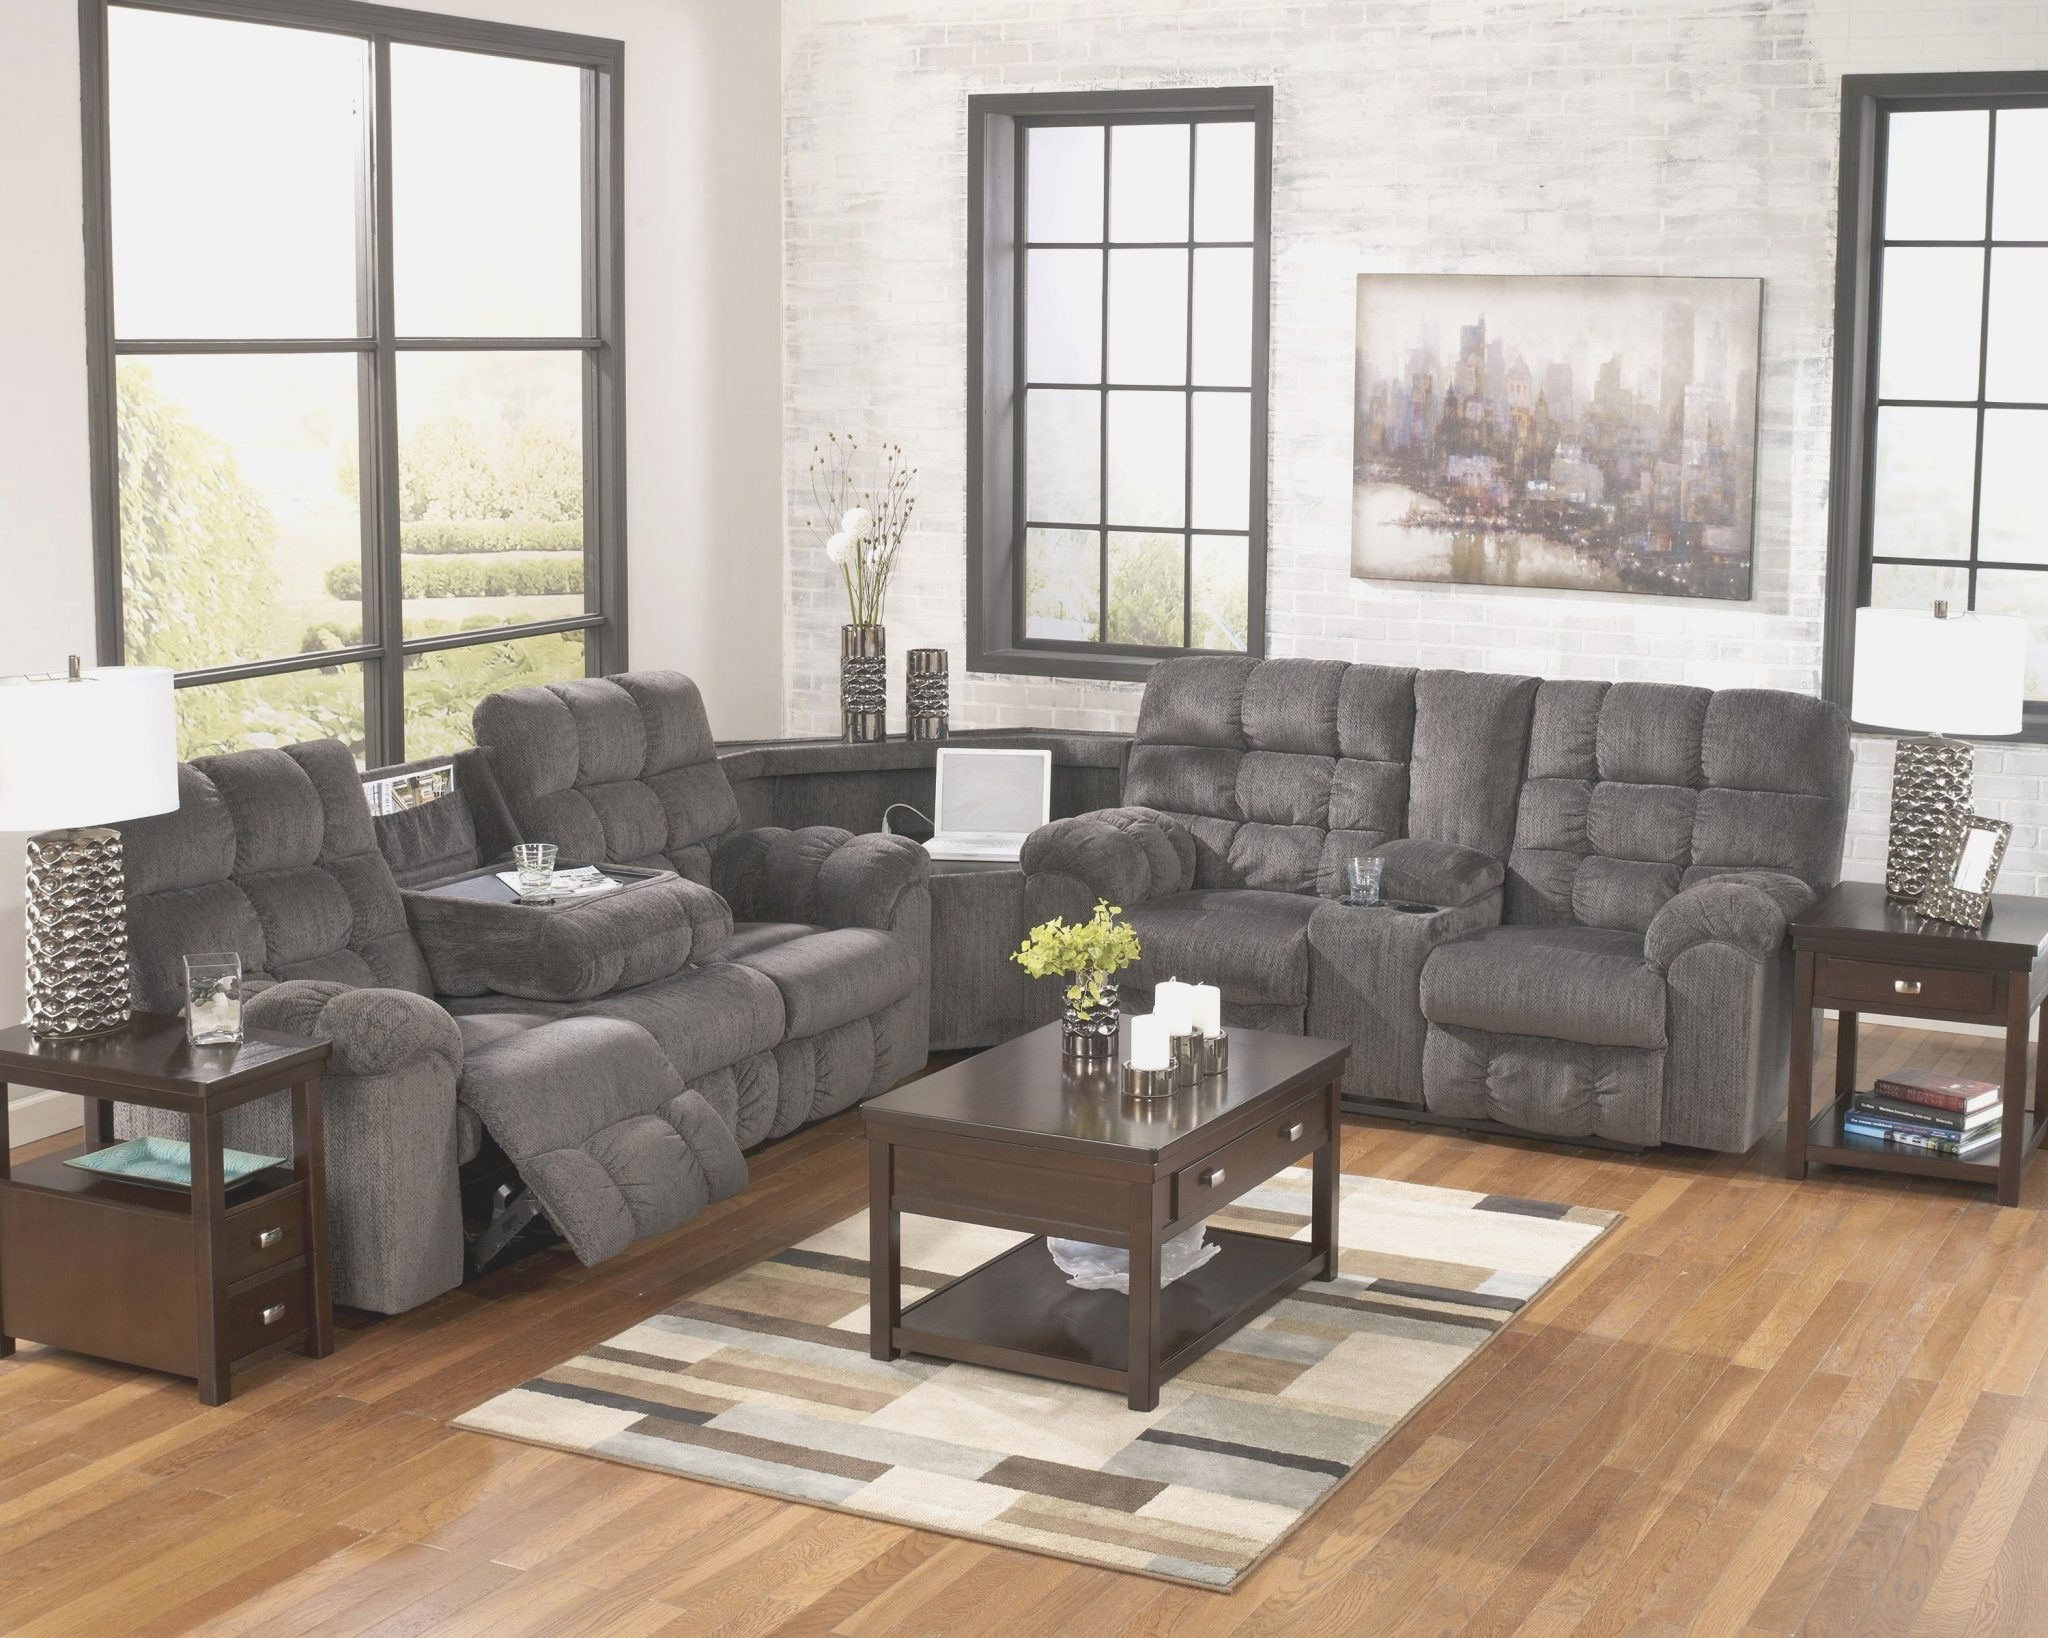 Sectional Recliner Sofa With Cup Holders Within Denali Light Grey 6 Piece Reclining Sectionals With 2 Power Headrests (Image 25 of 25)